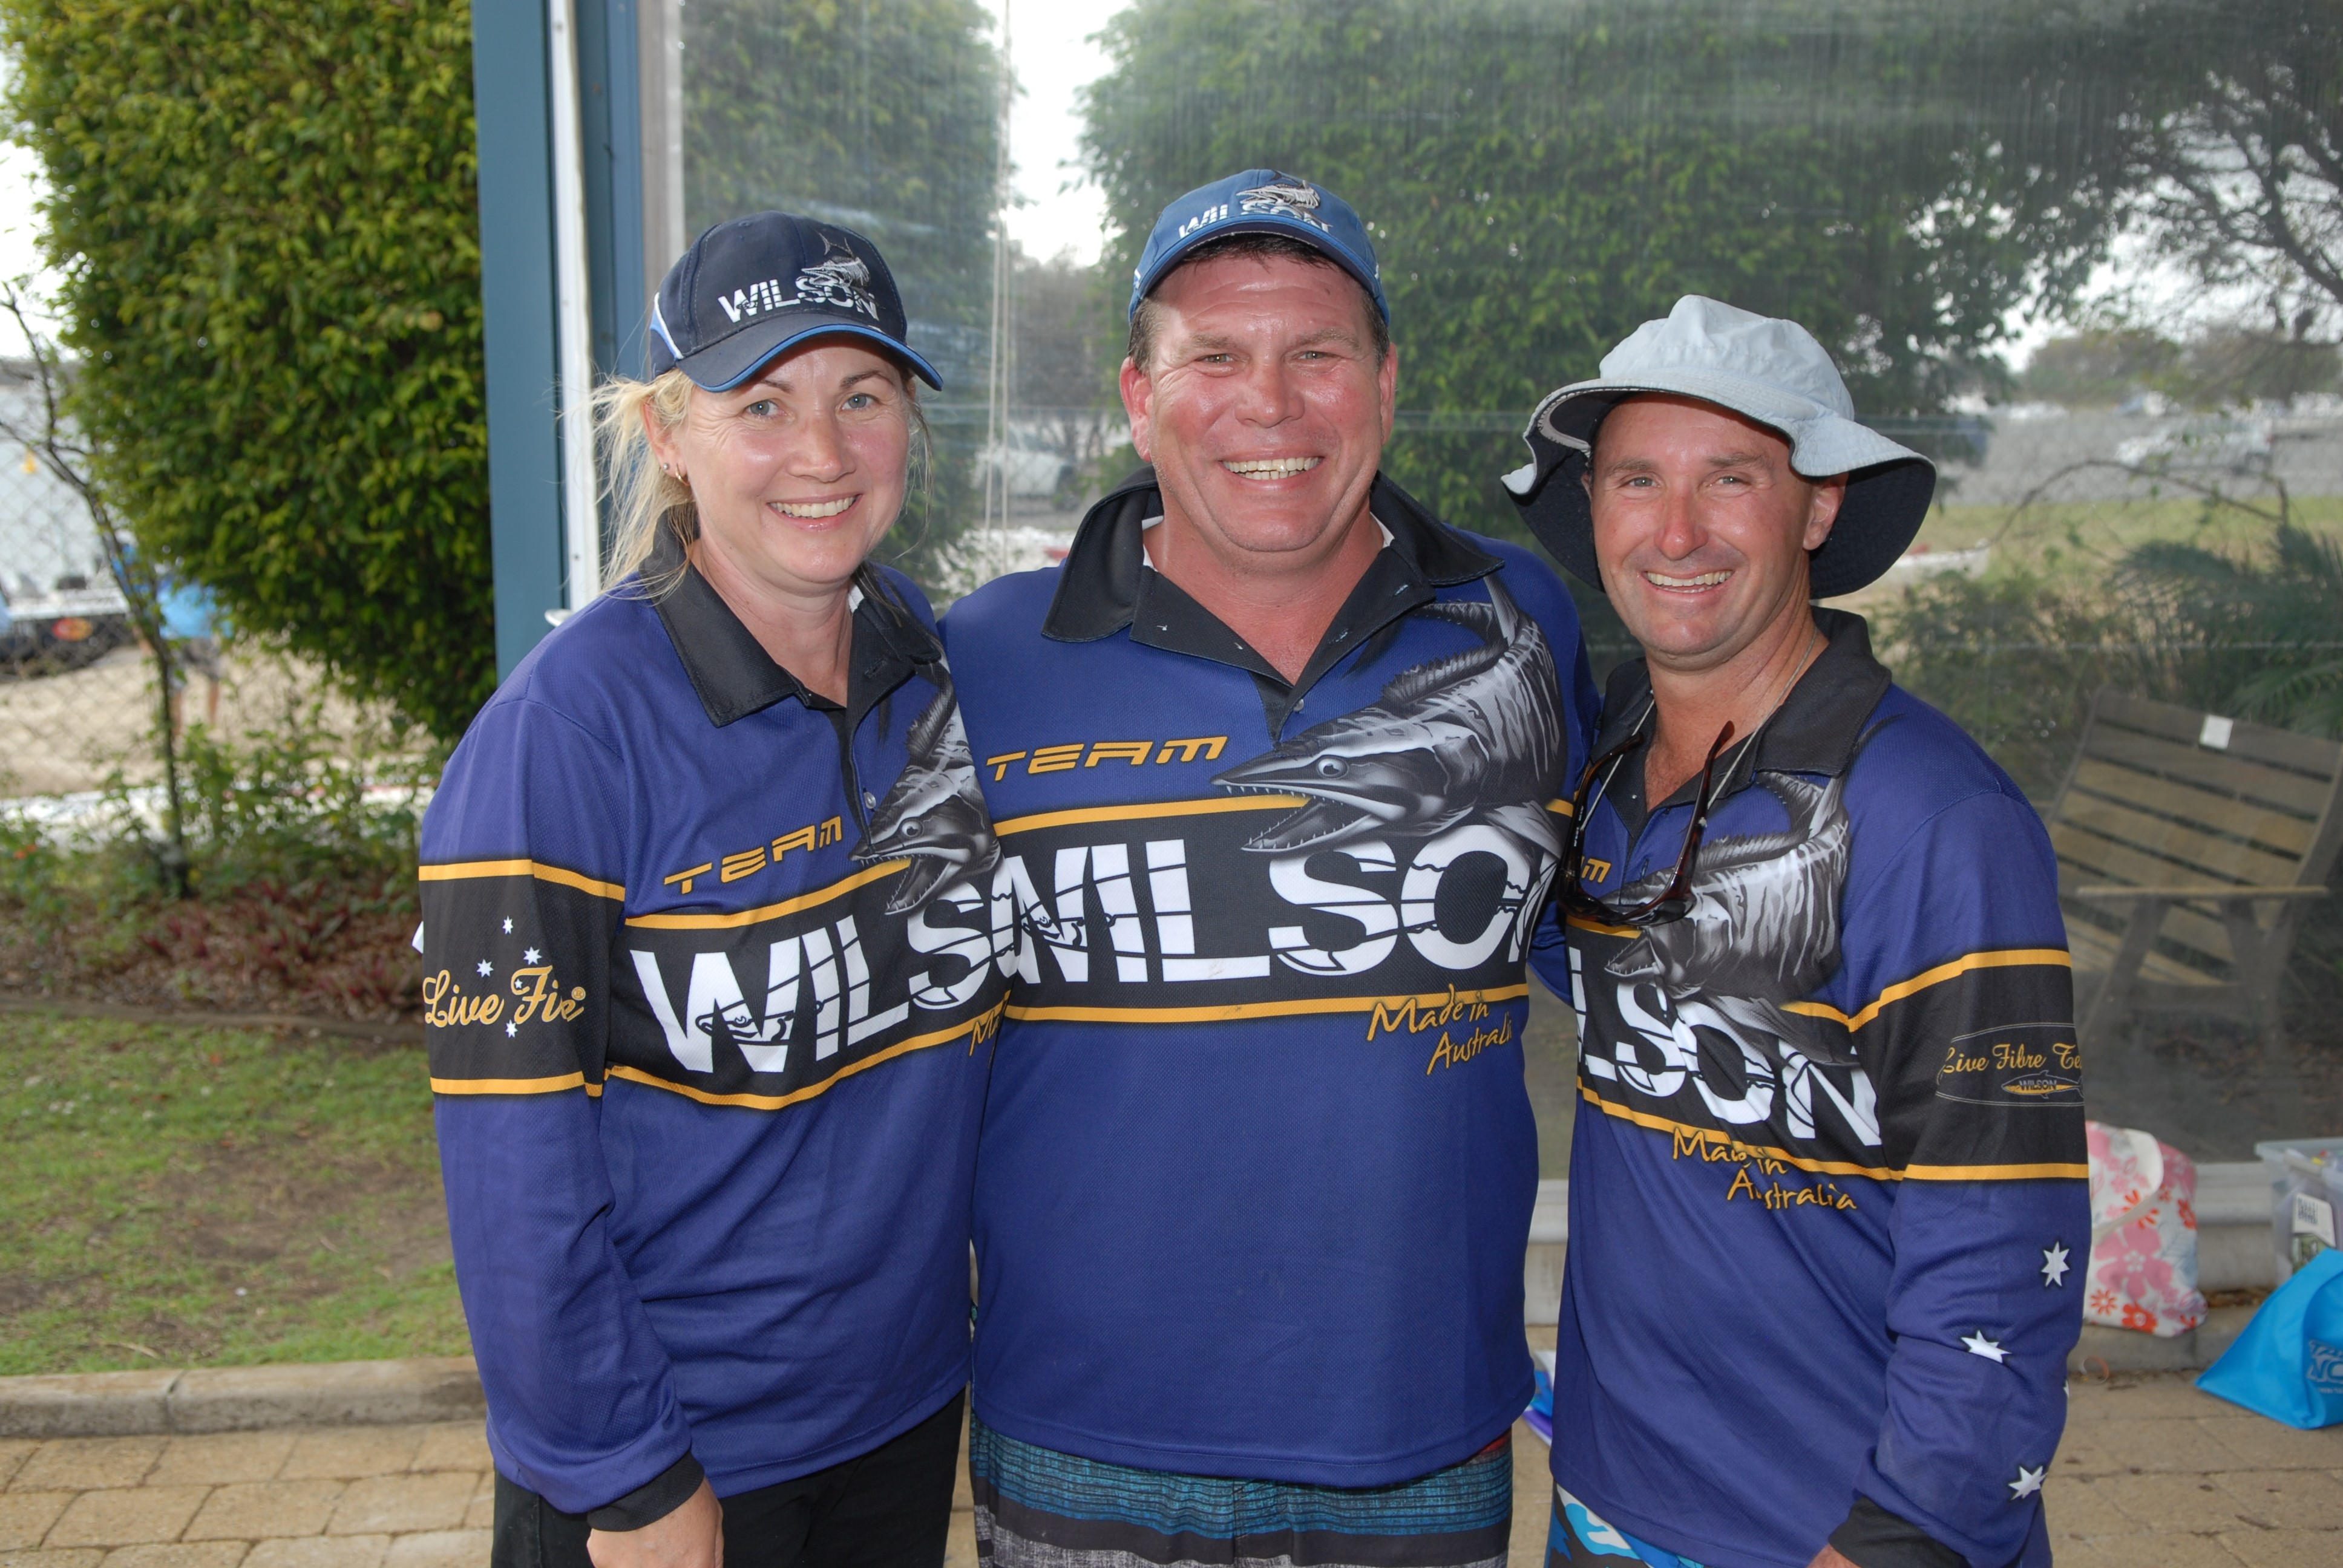 Team Wilson placed first in the Dash for Cash.